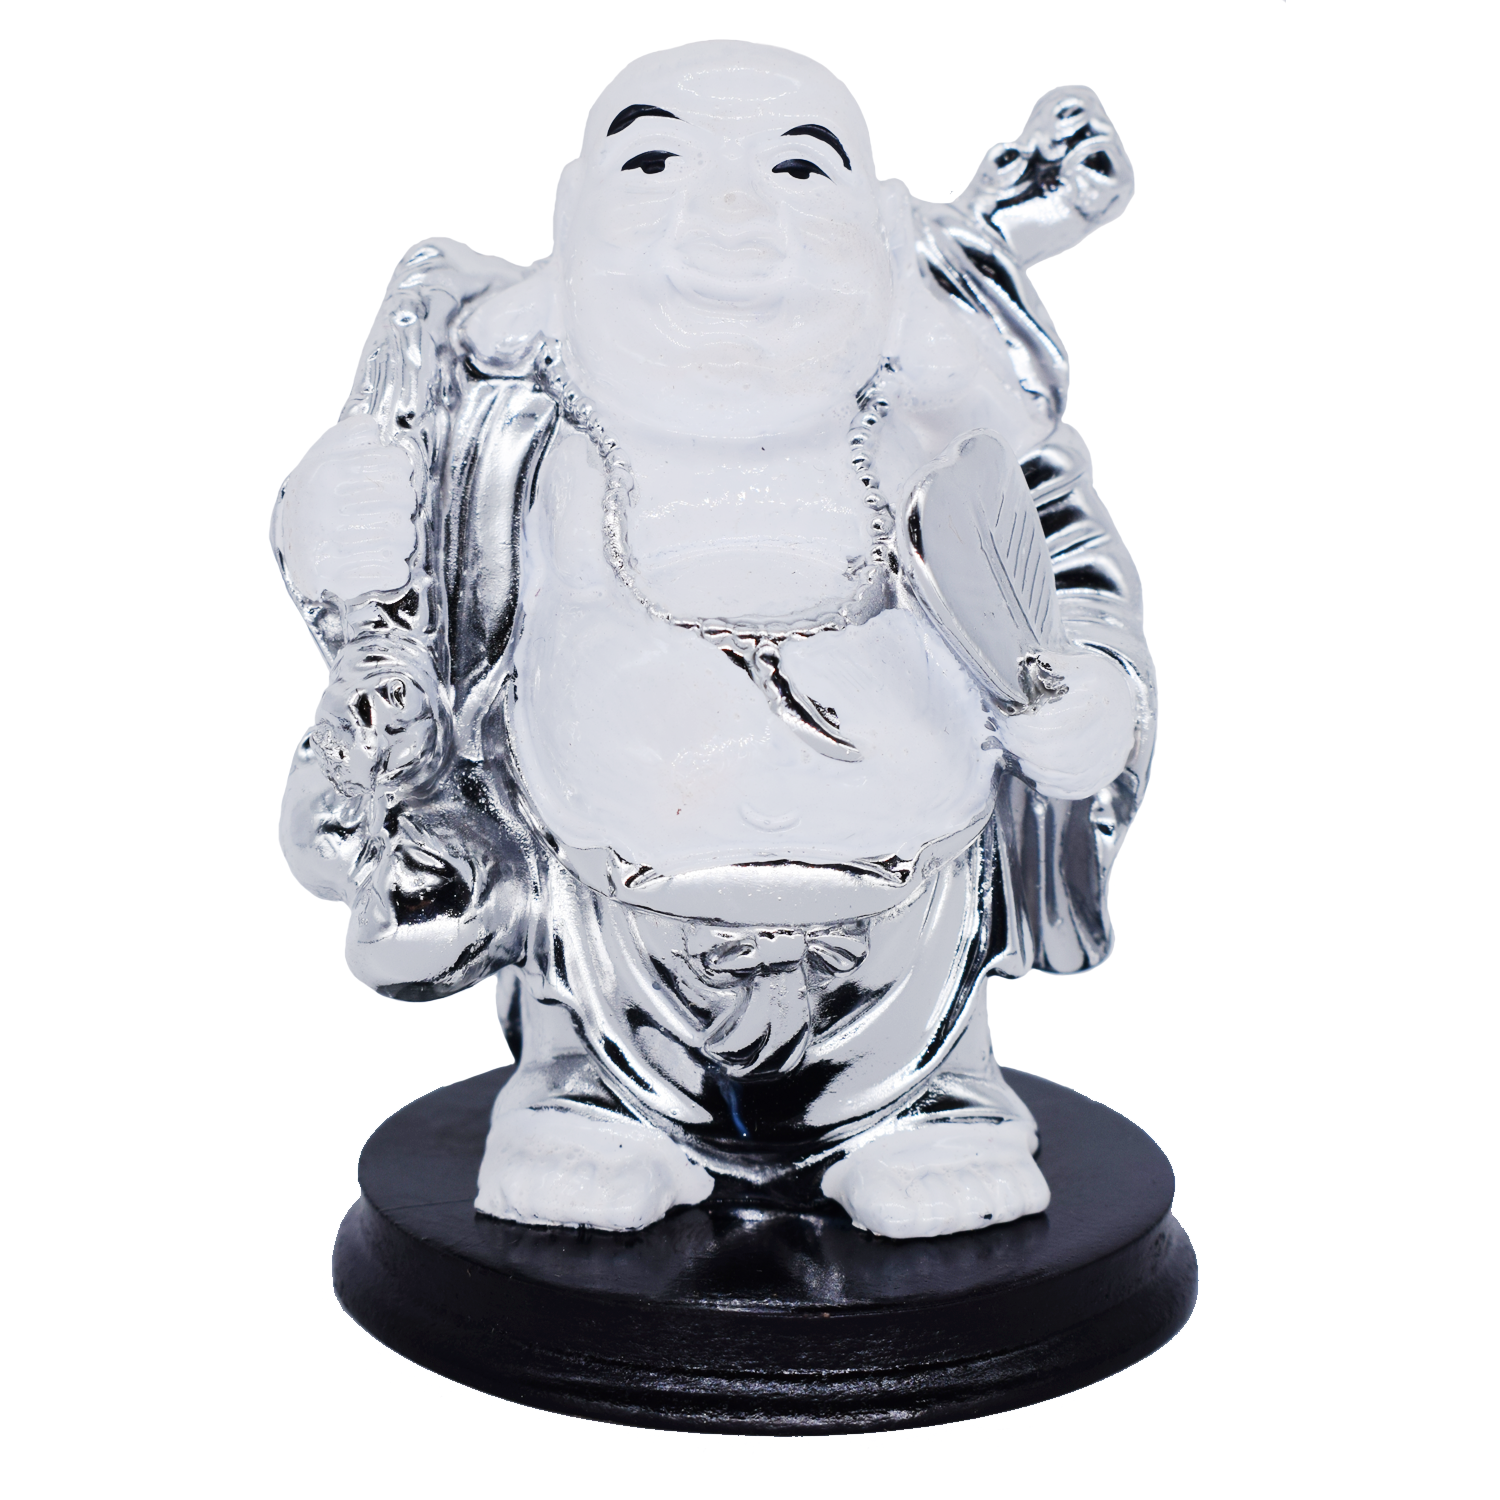 Feng Shui Chinese Happy Laughing Buddha Figurine Statue Gift Showpiece (9 CM) - Bagaholics Gift